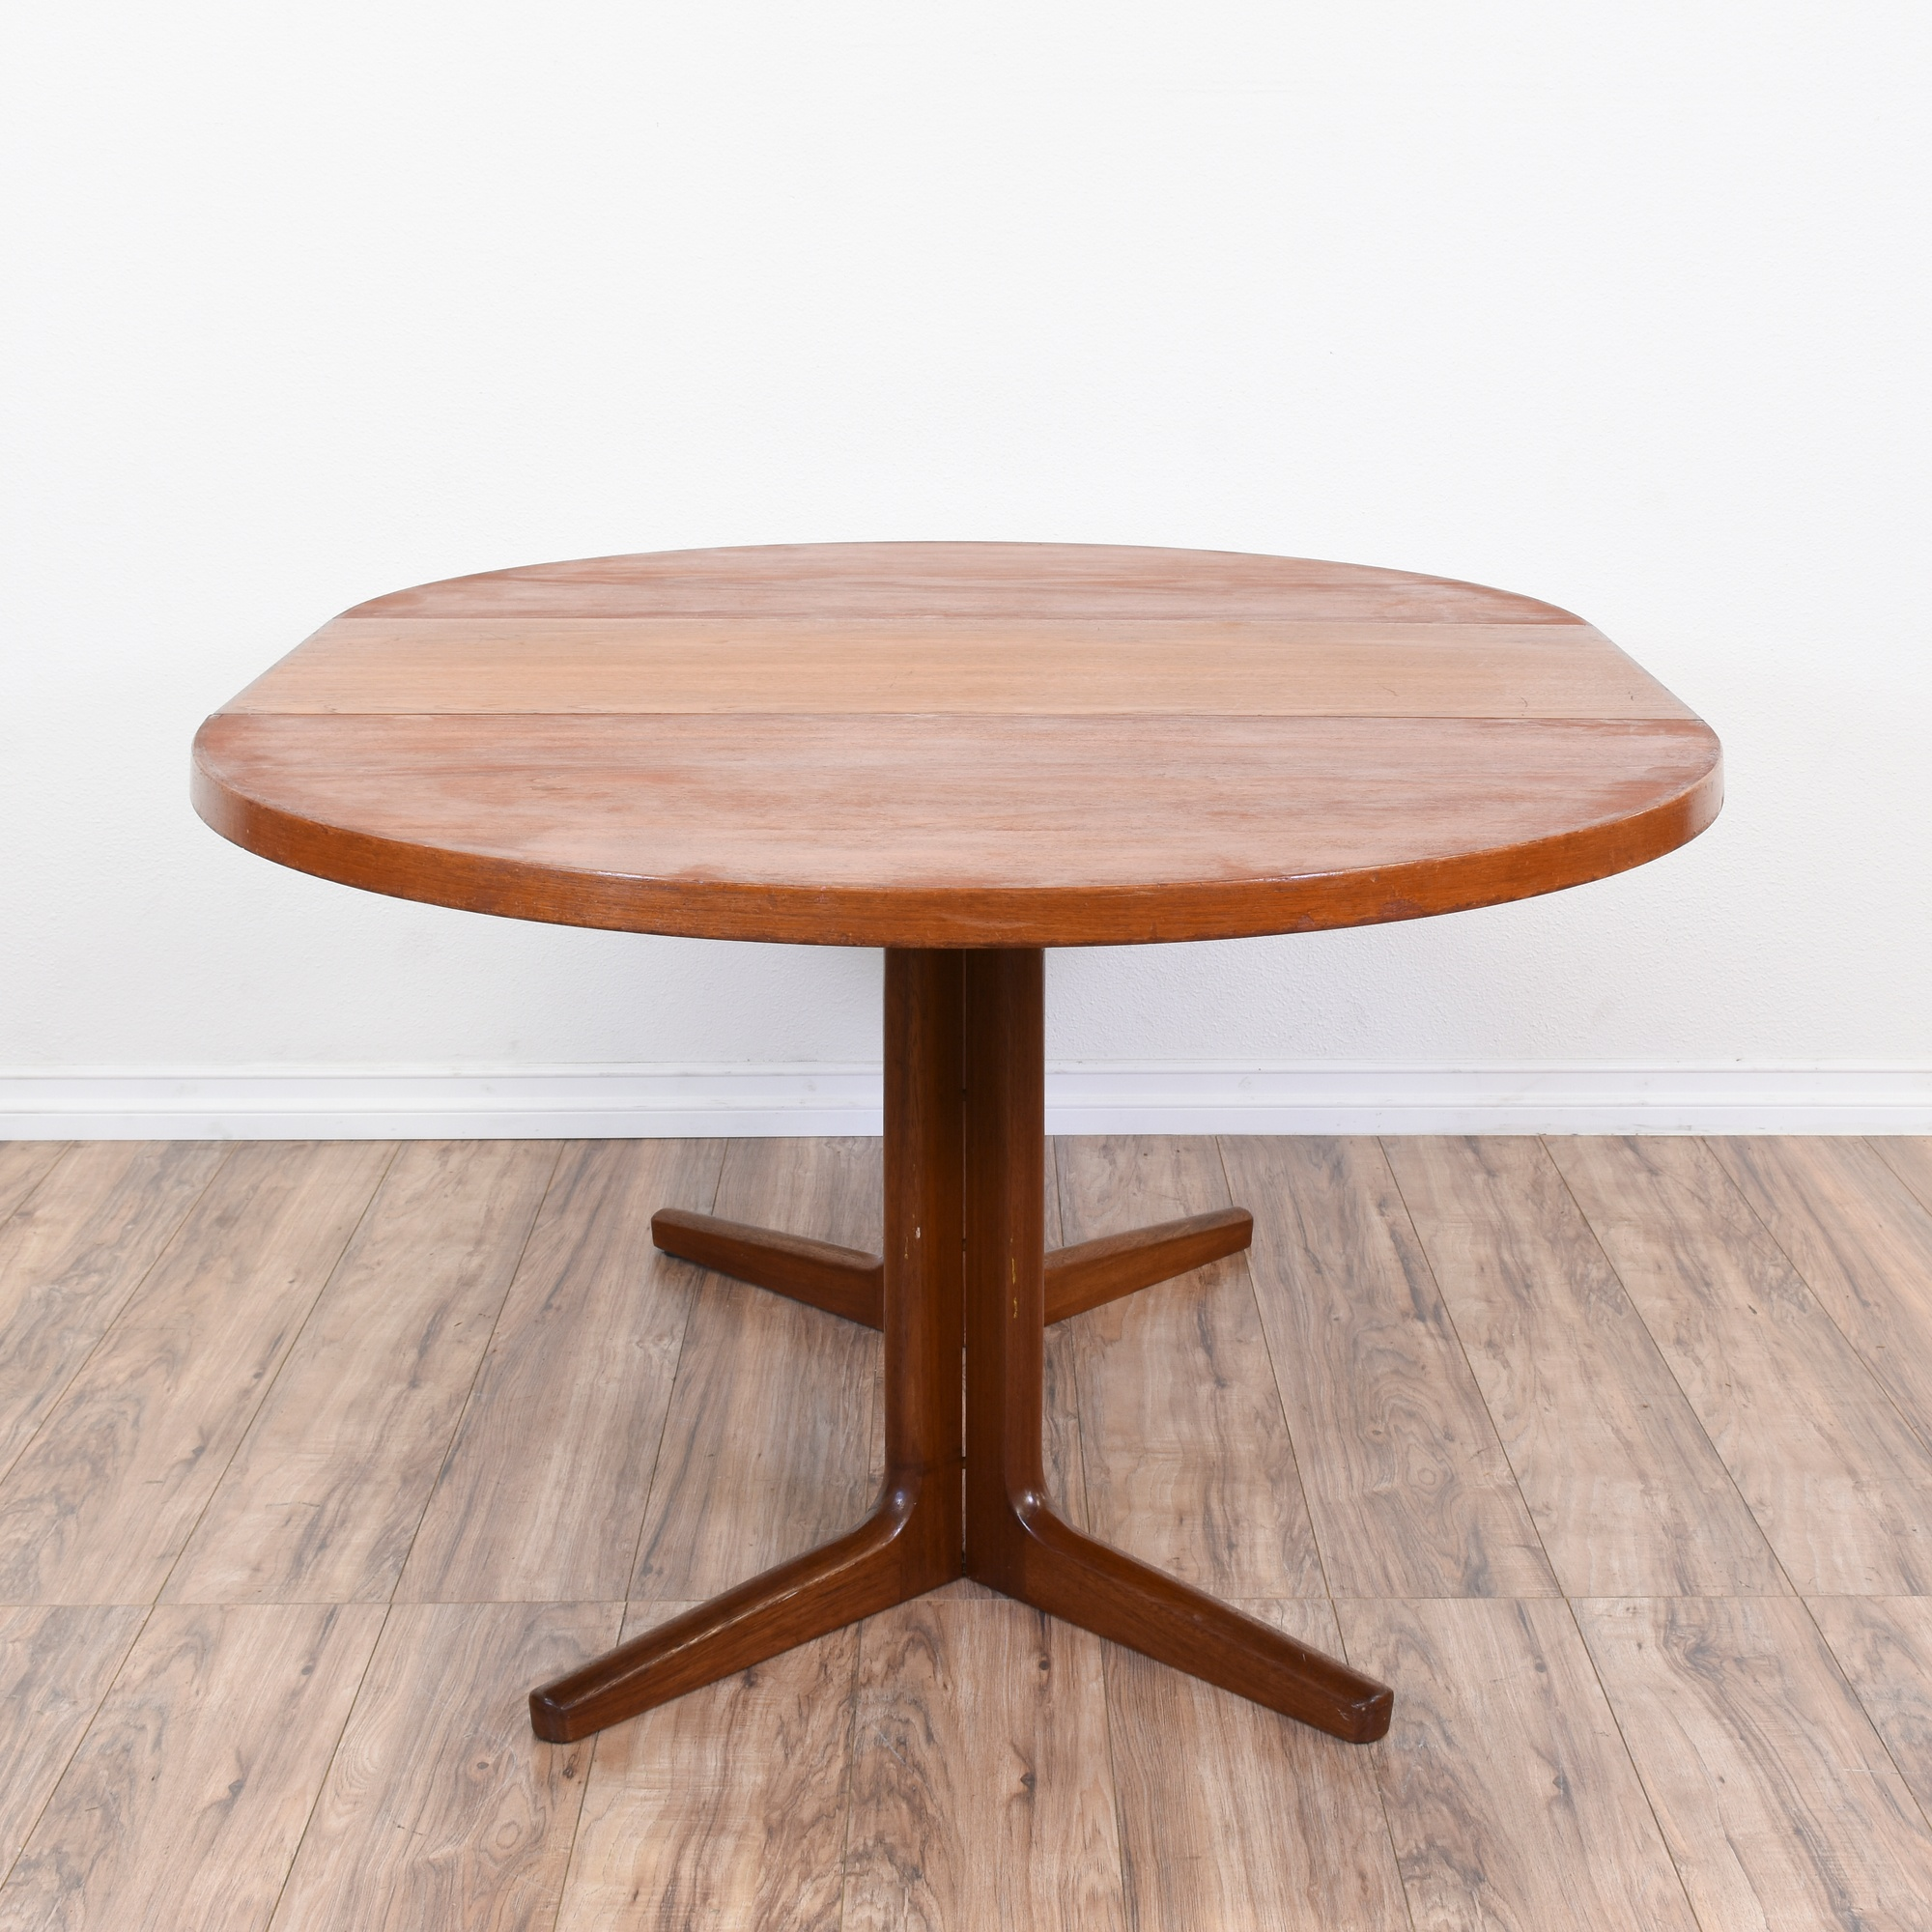 Dining Room Chairs San Diego: Danish Modern Round Dining Table W/1 Leaf